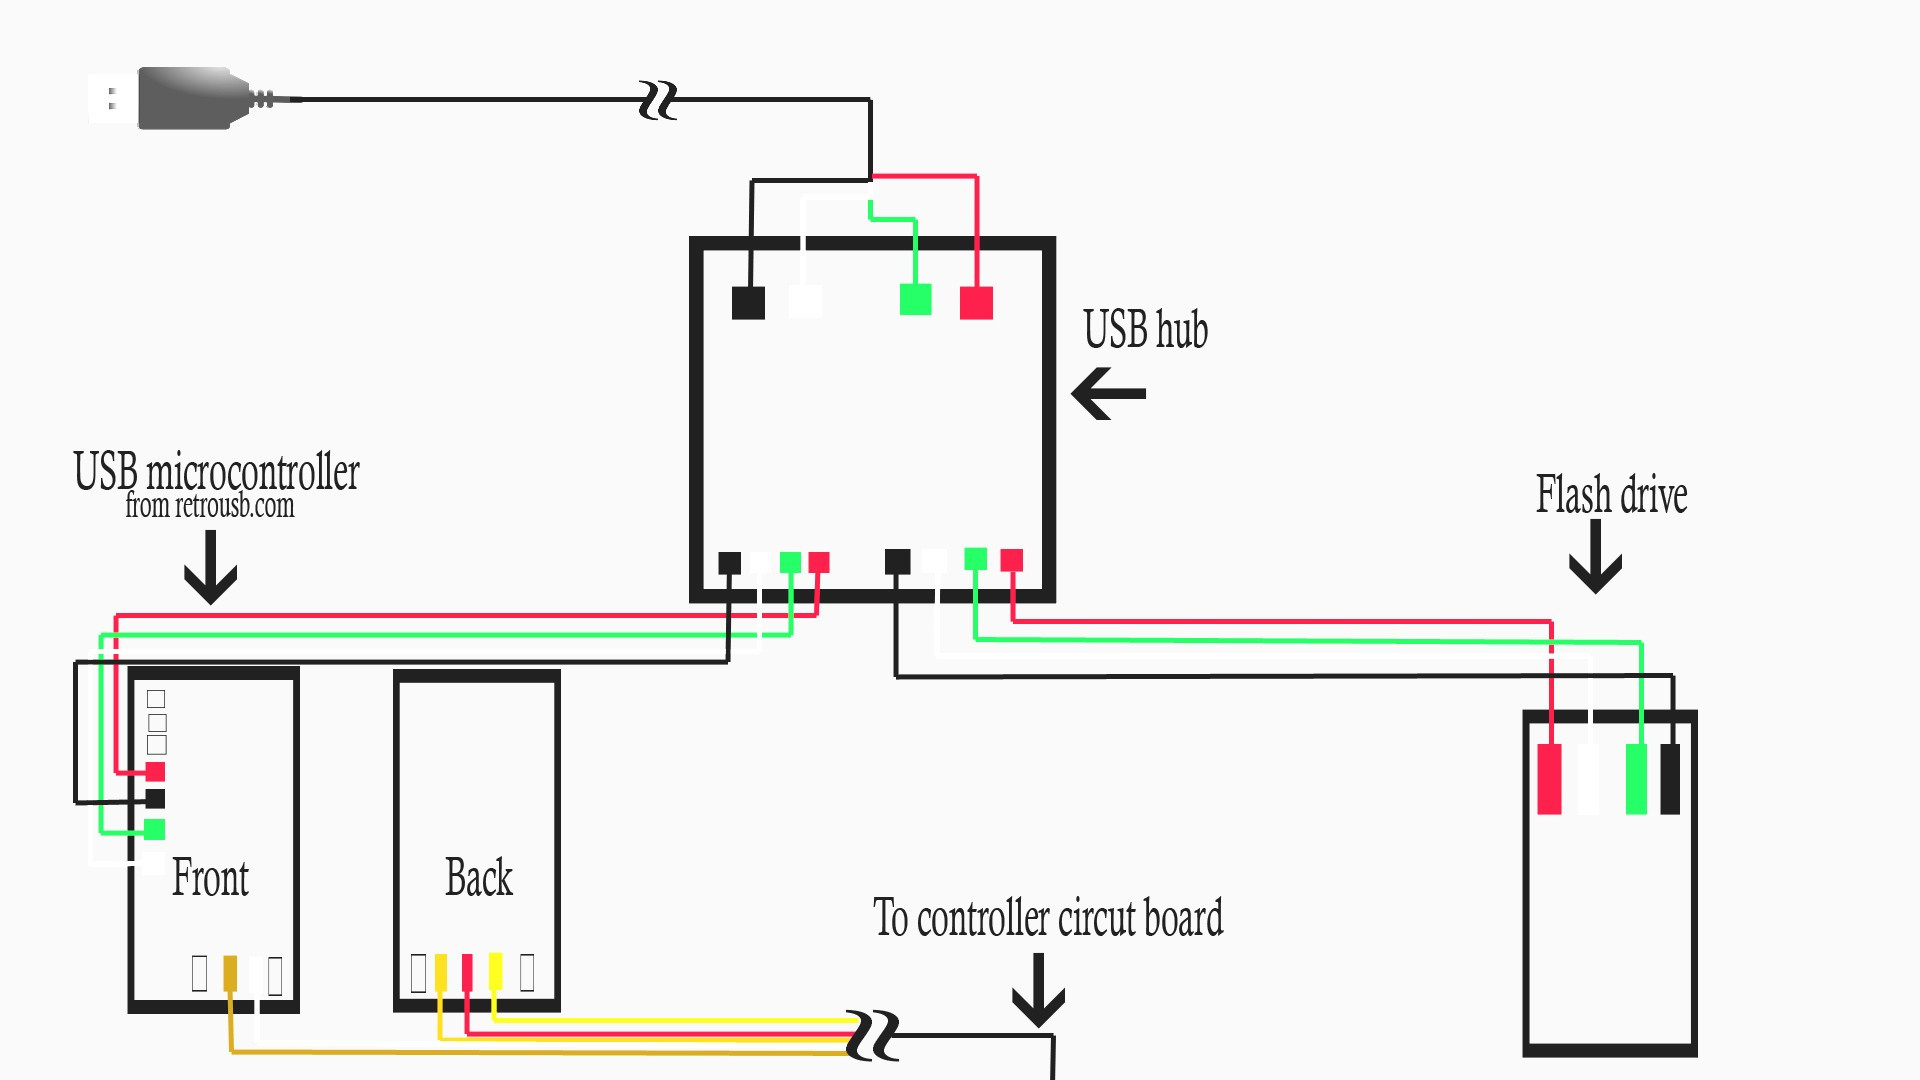 Micro Usb To Hdmi Wiring Diagram Reference Hdmi Cable Wire Color - Wiring Diagram For Micro Usb